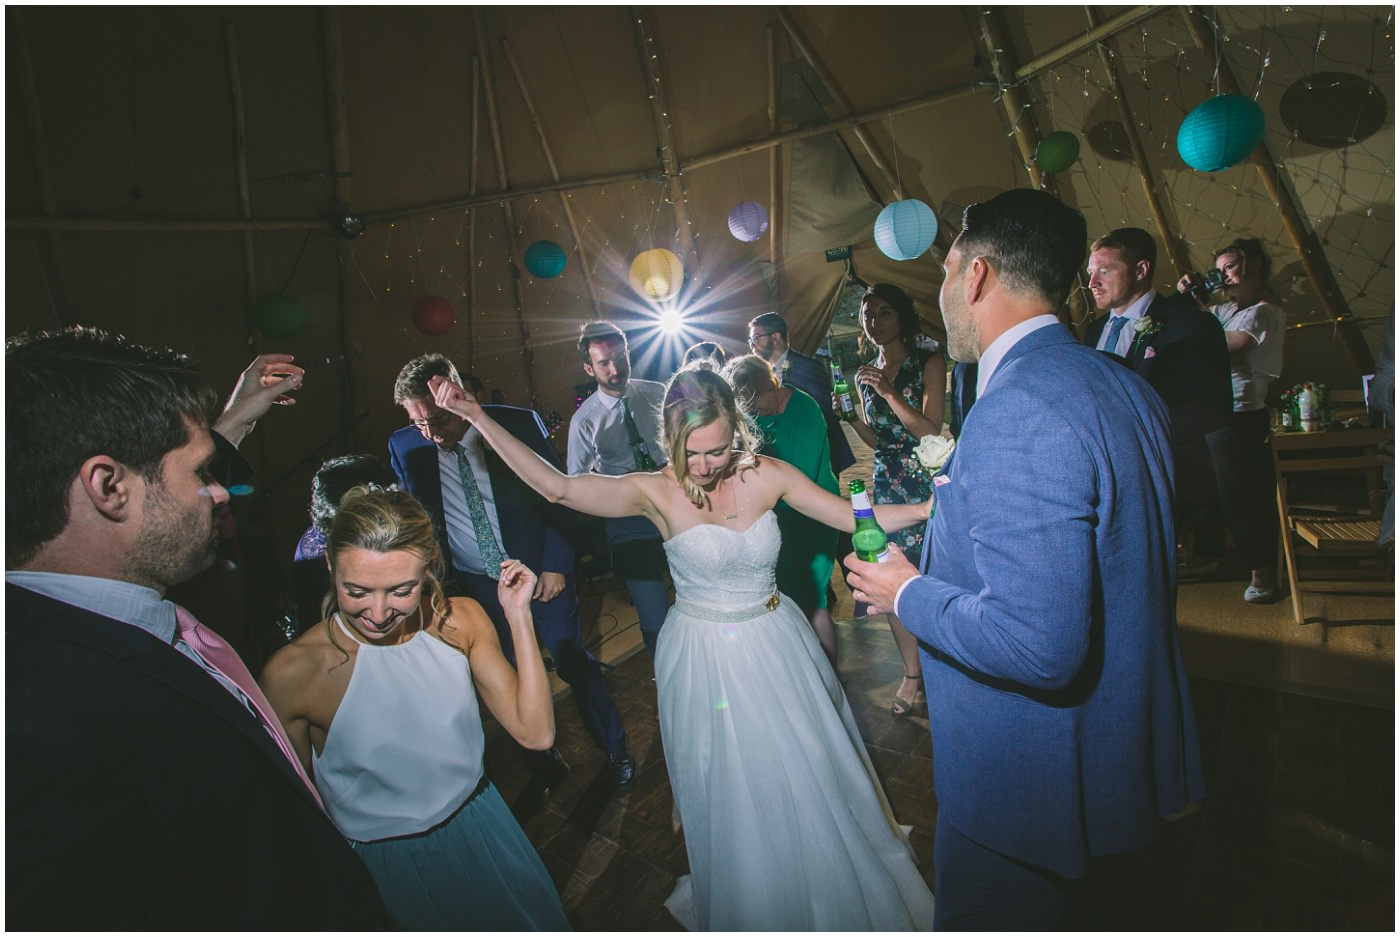 Bride dancing on dance floor at tipi wedding